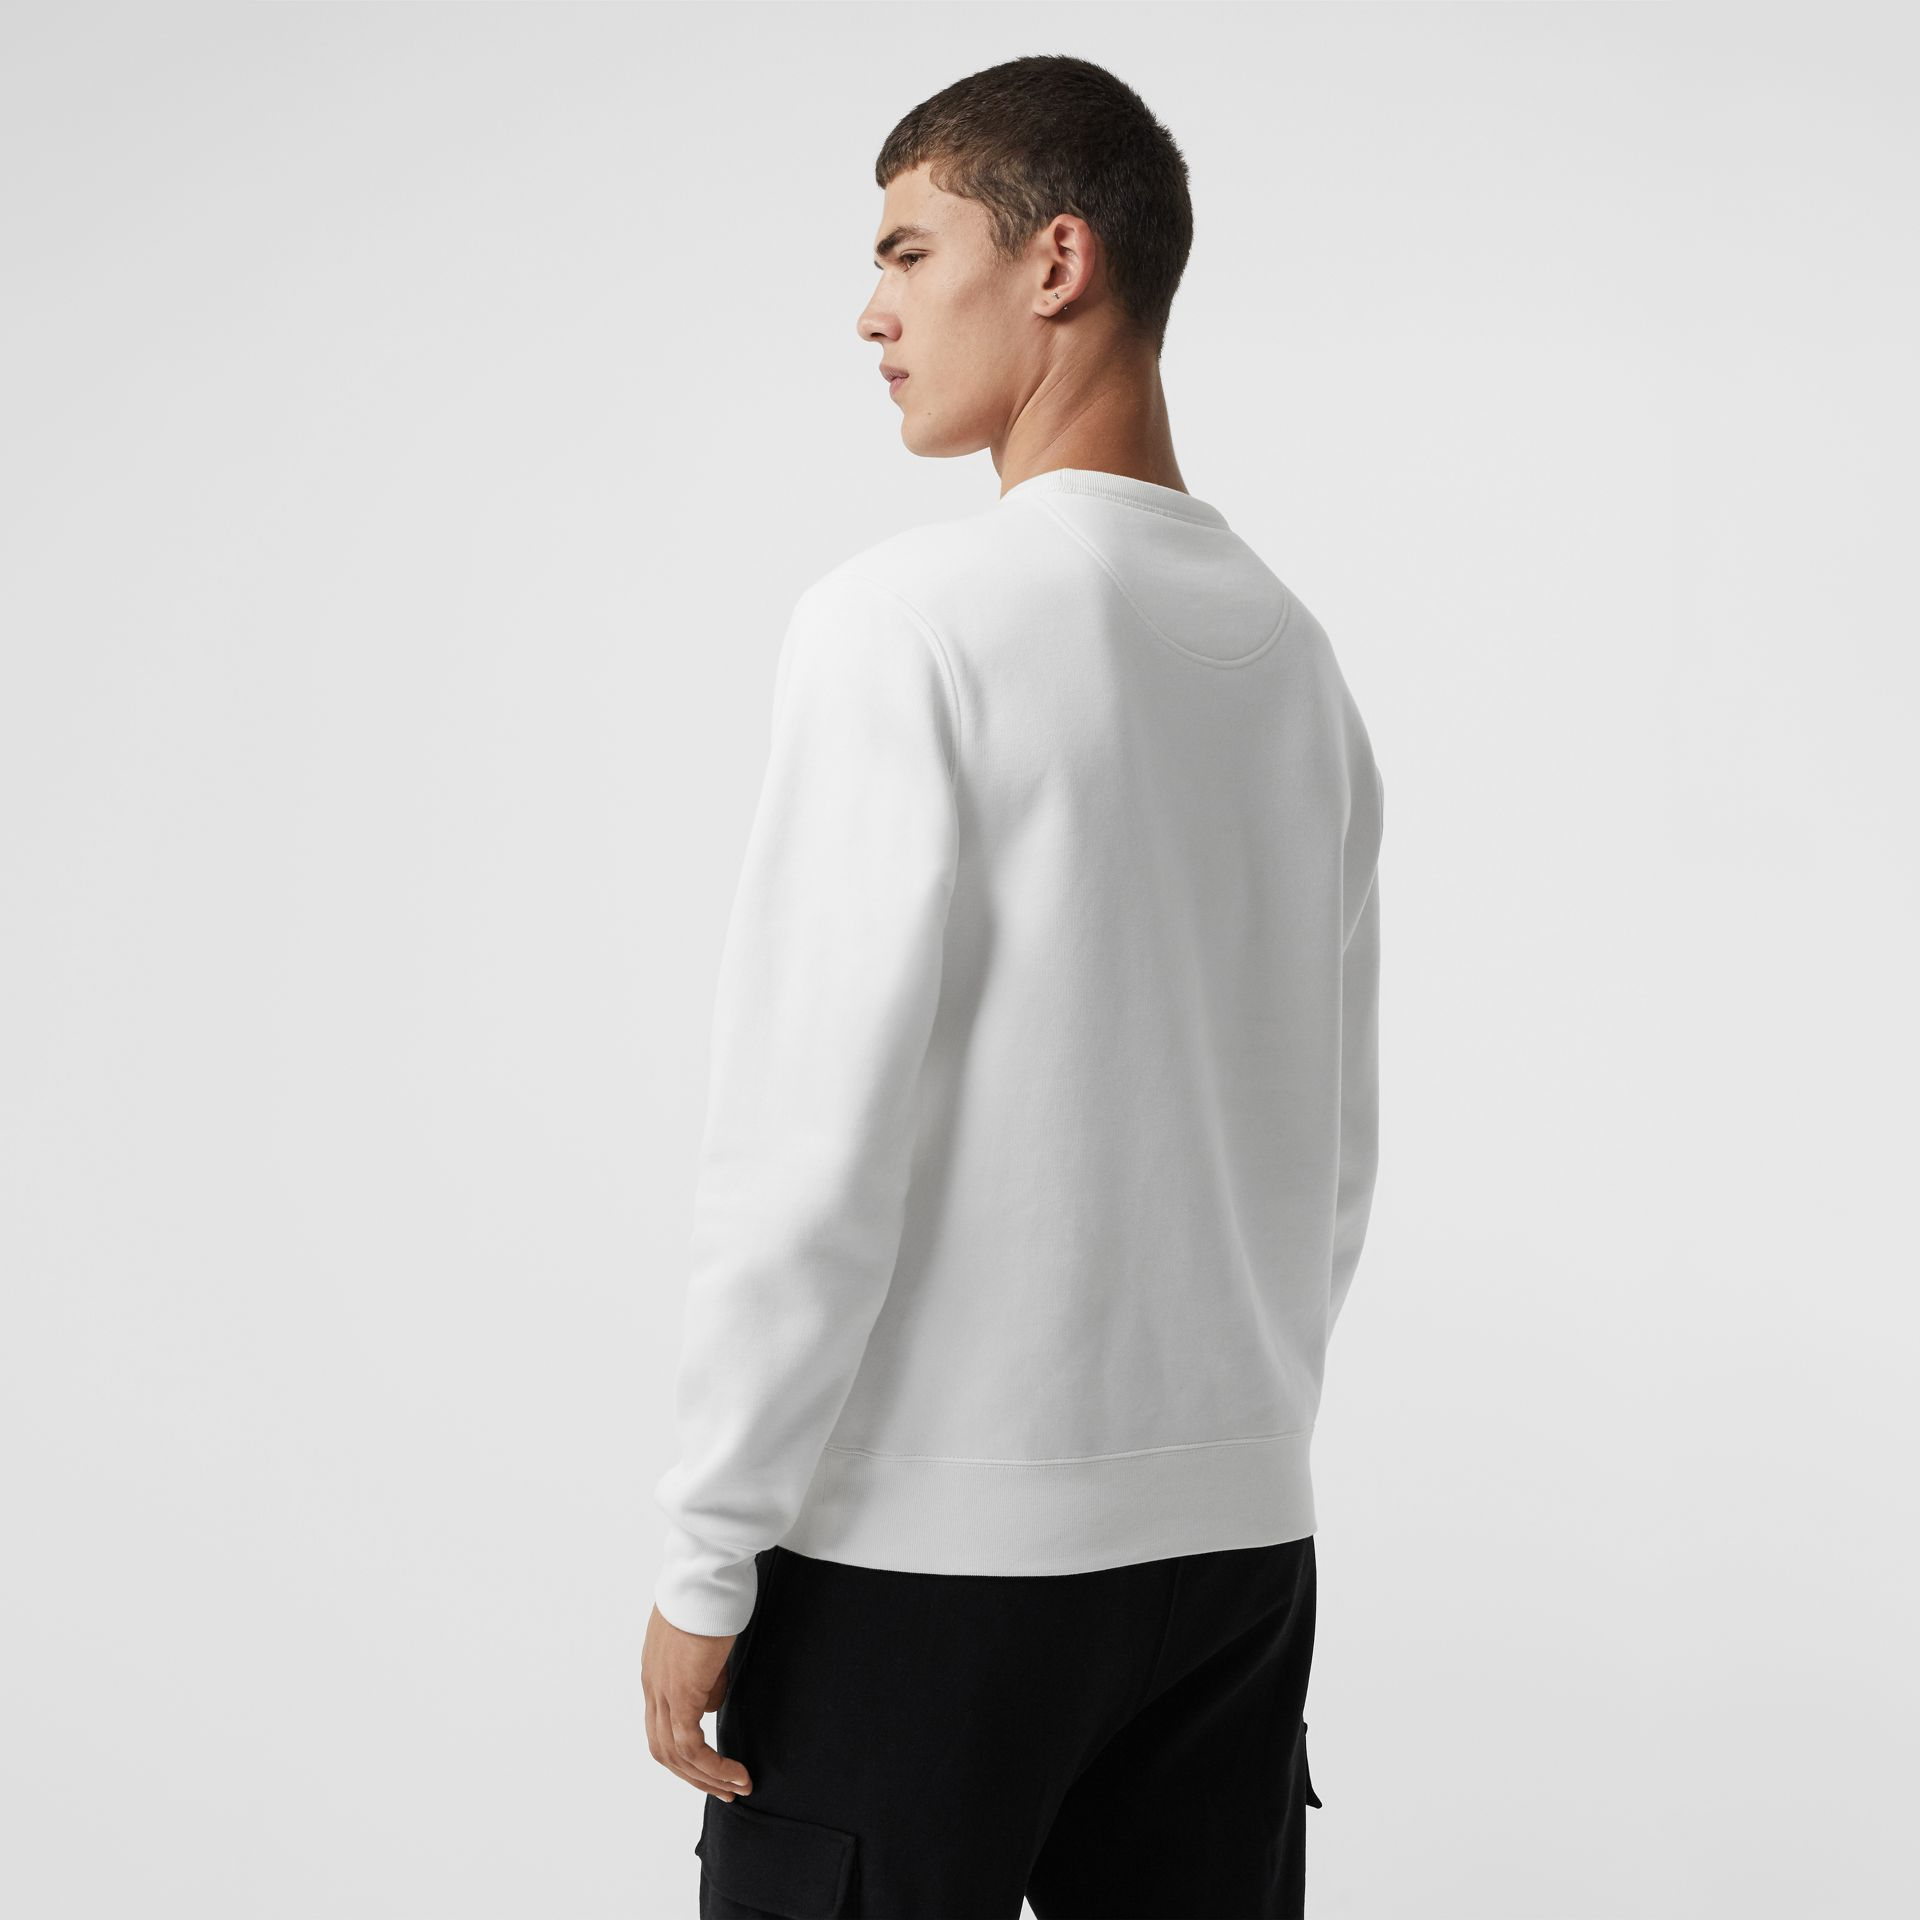 Sweat-shirt en jersey avec écusson brodé (Blanc) - Homme | Burberry - photo de la galerie 2